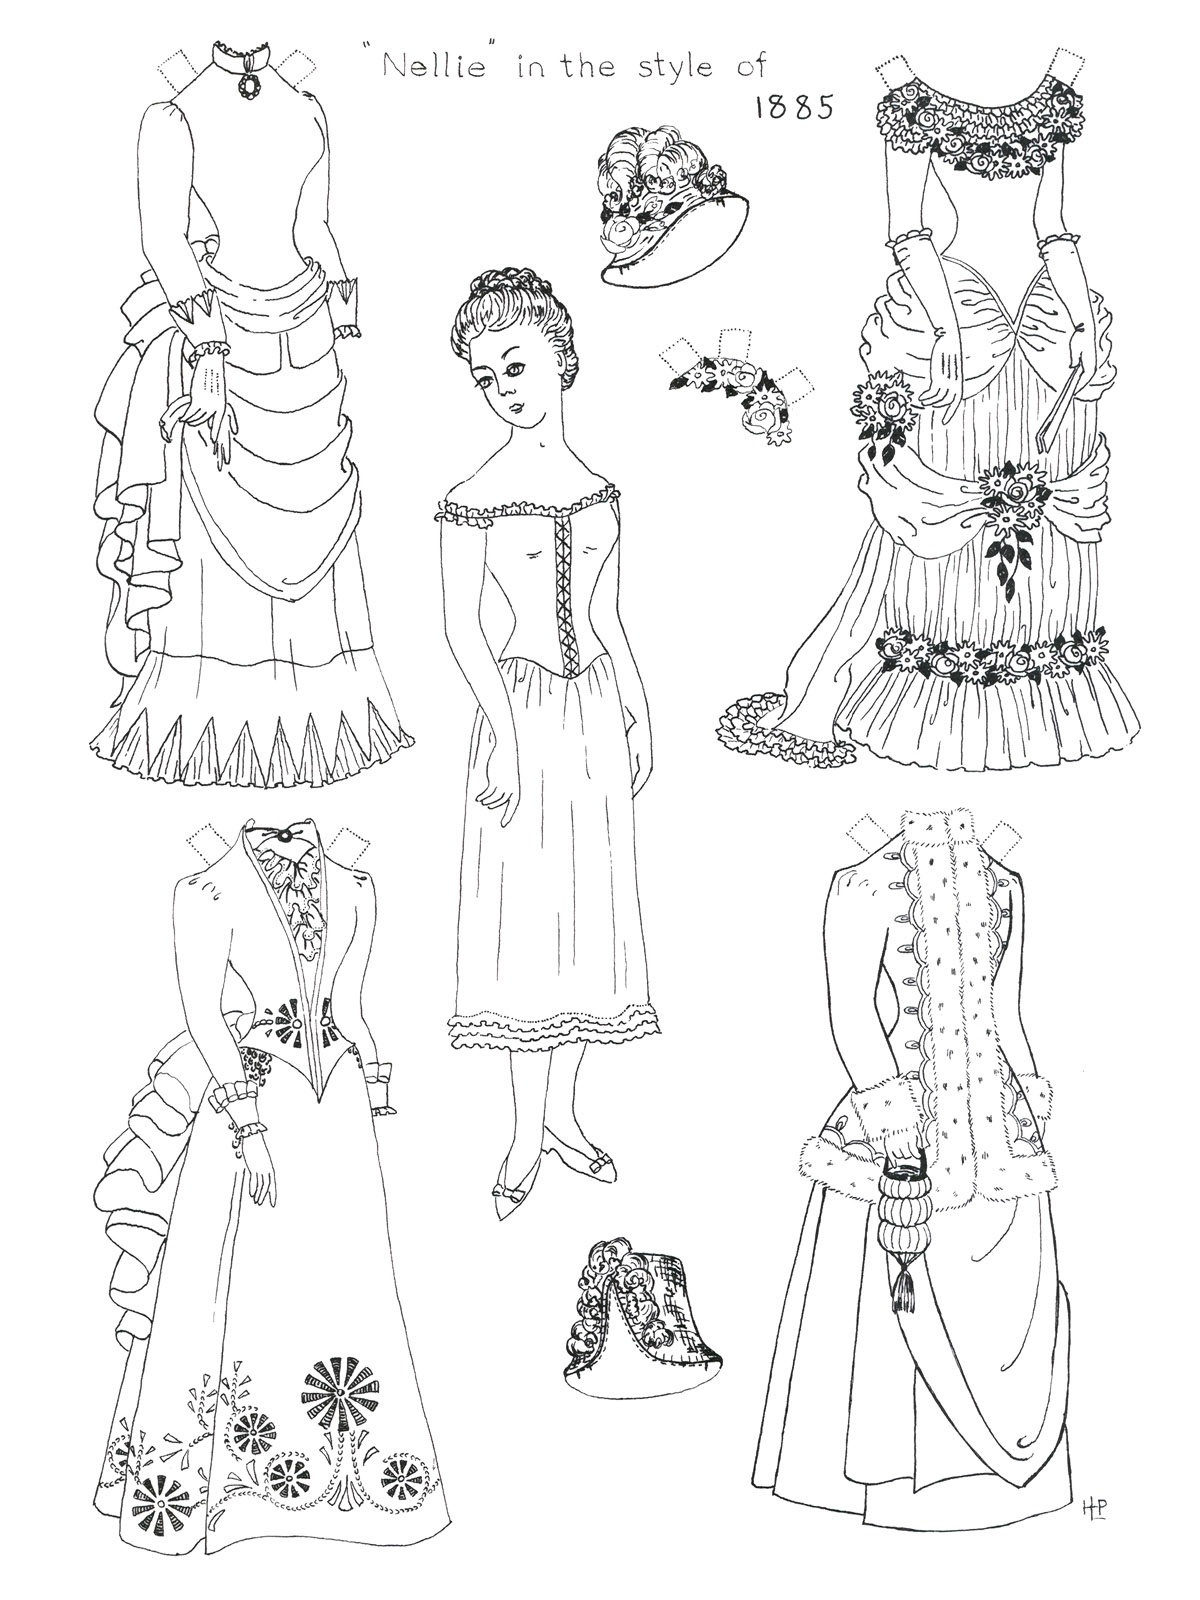 Printable Paper Doll Coloring Pages   Coloringme - Printable Paper Dolls To Color Free